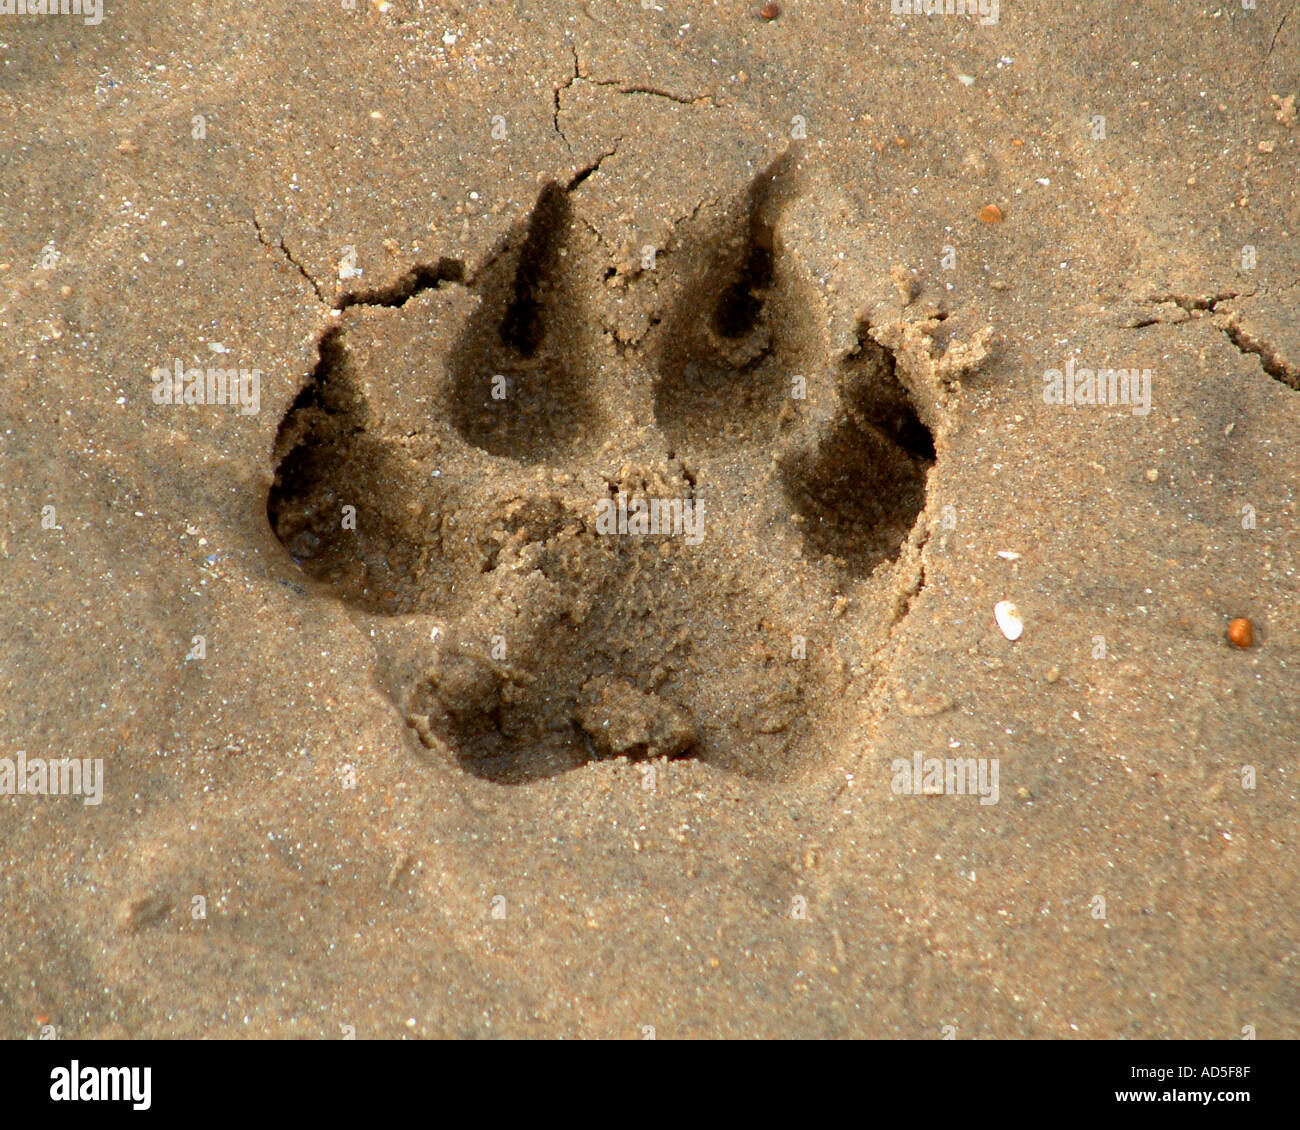 Great Dane footprint - Stock Image